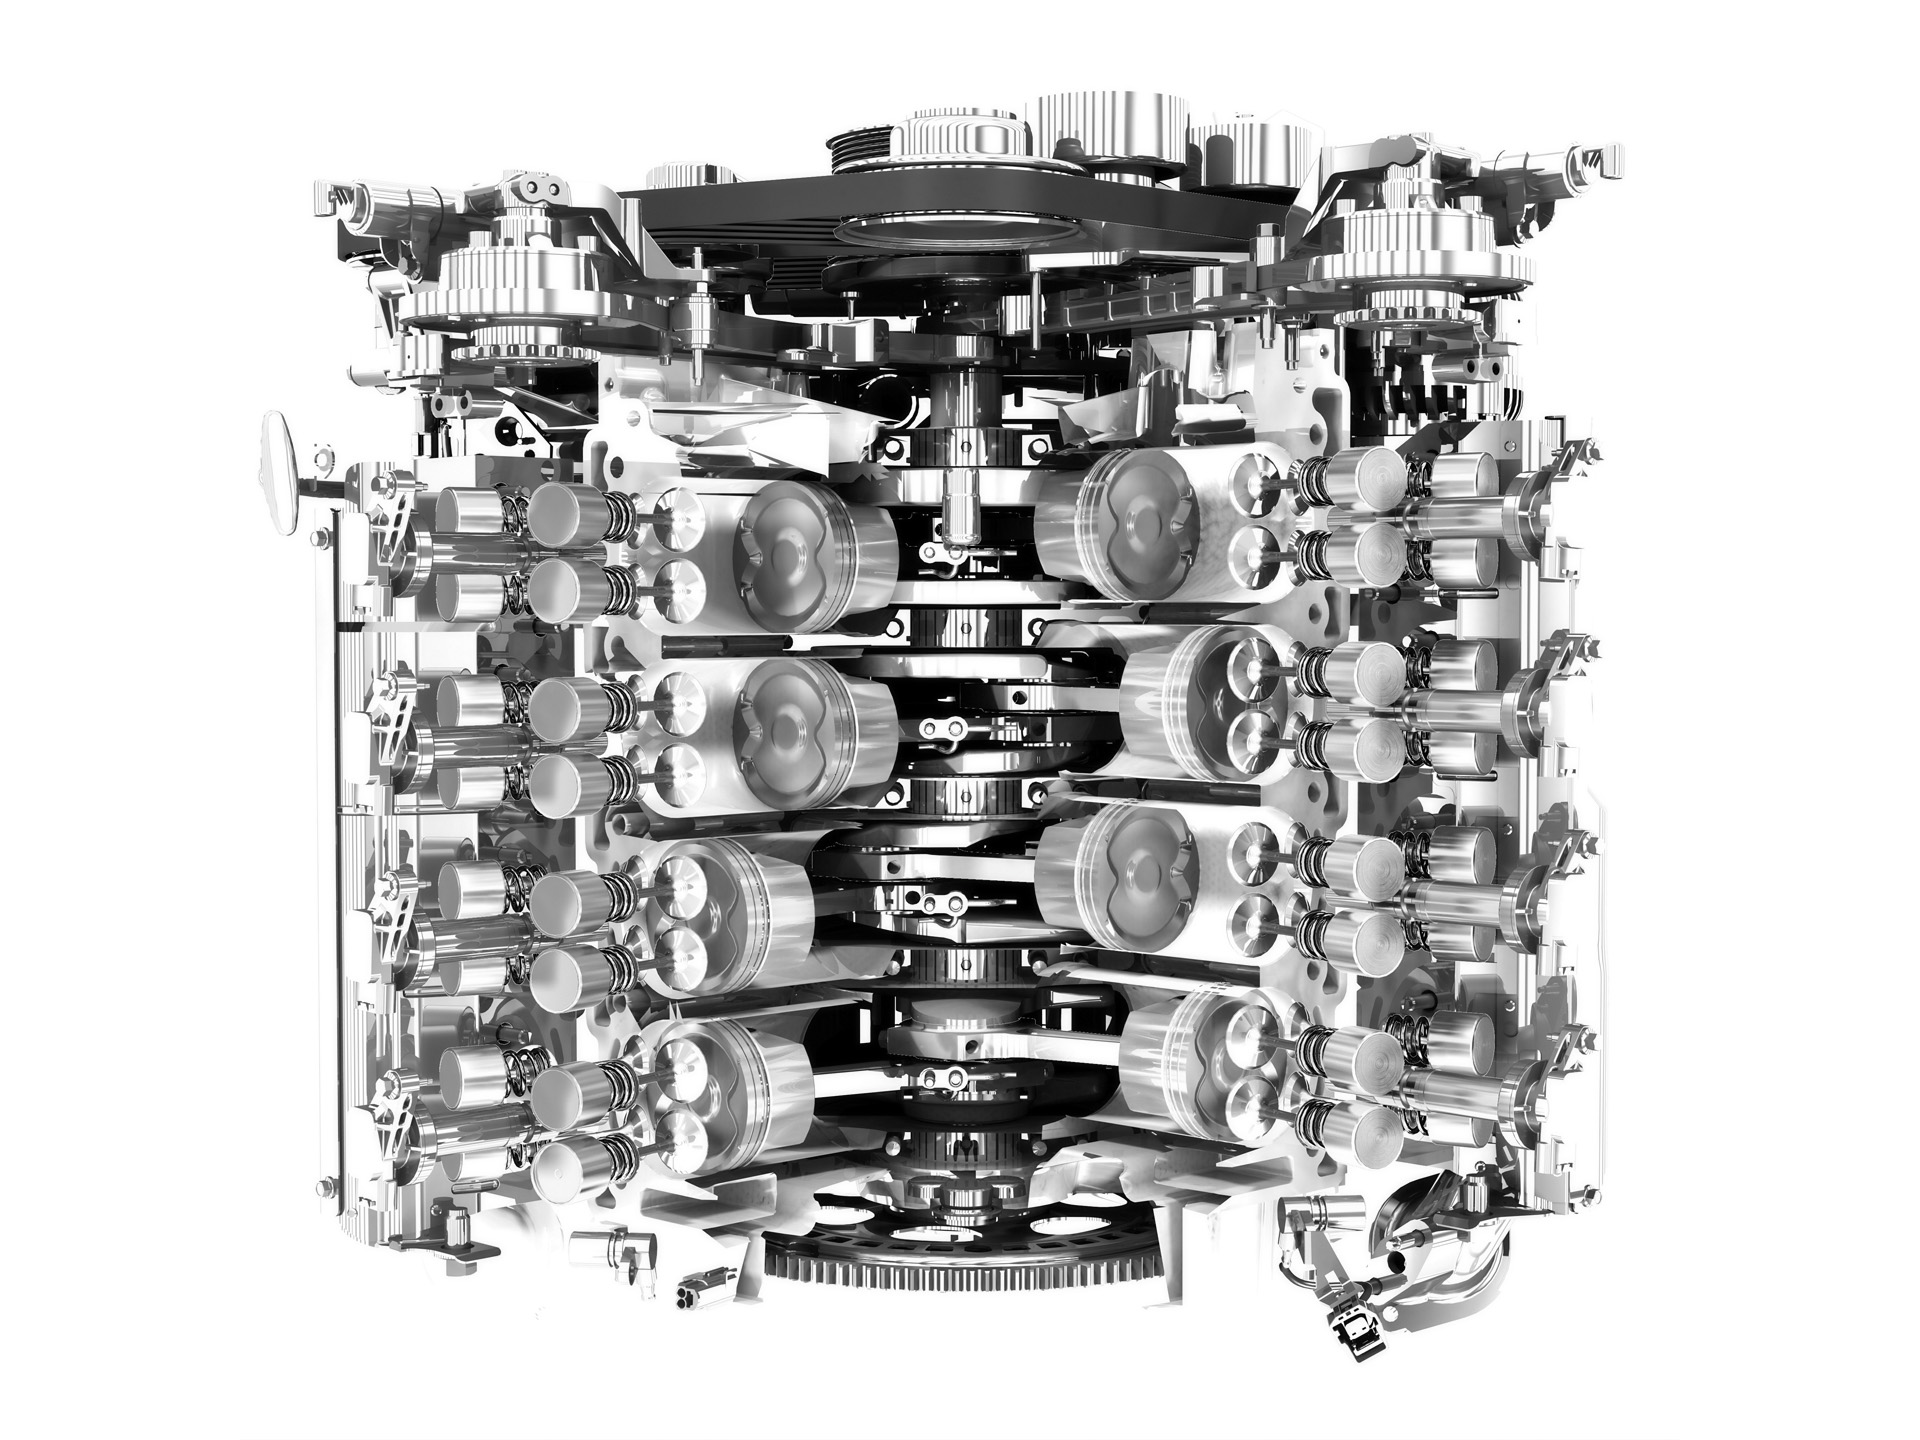 Sample P0594 Engine